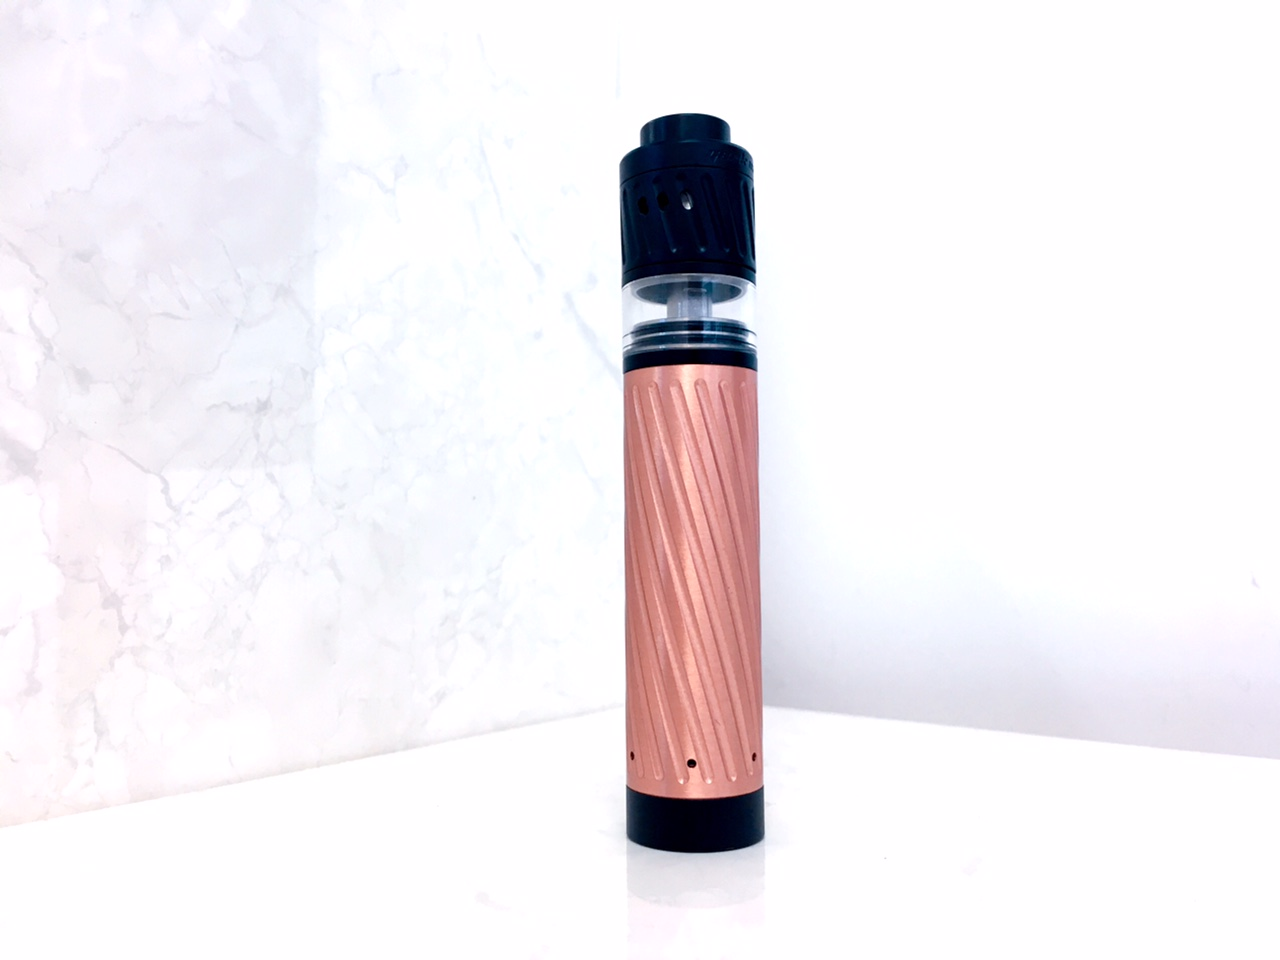 GEEK VAPE KARMA KIT